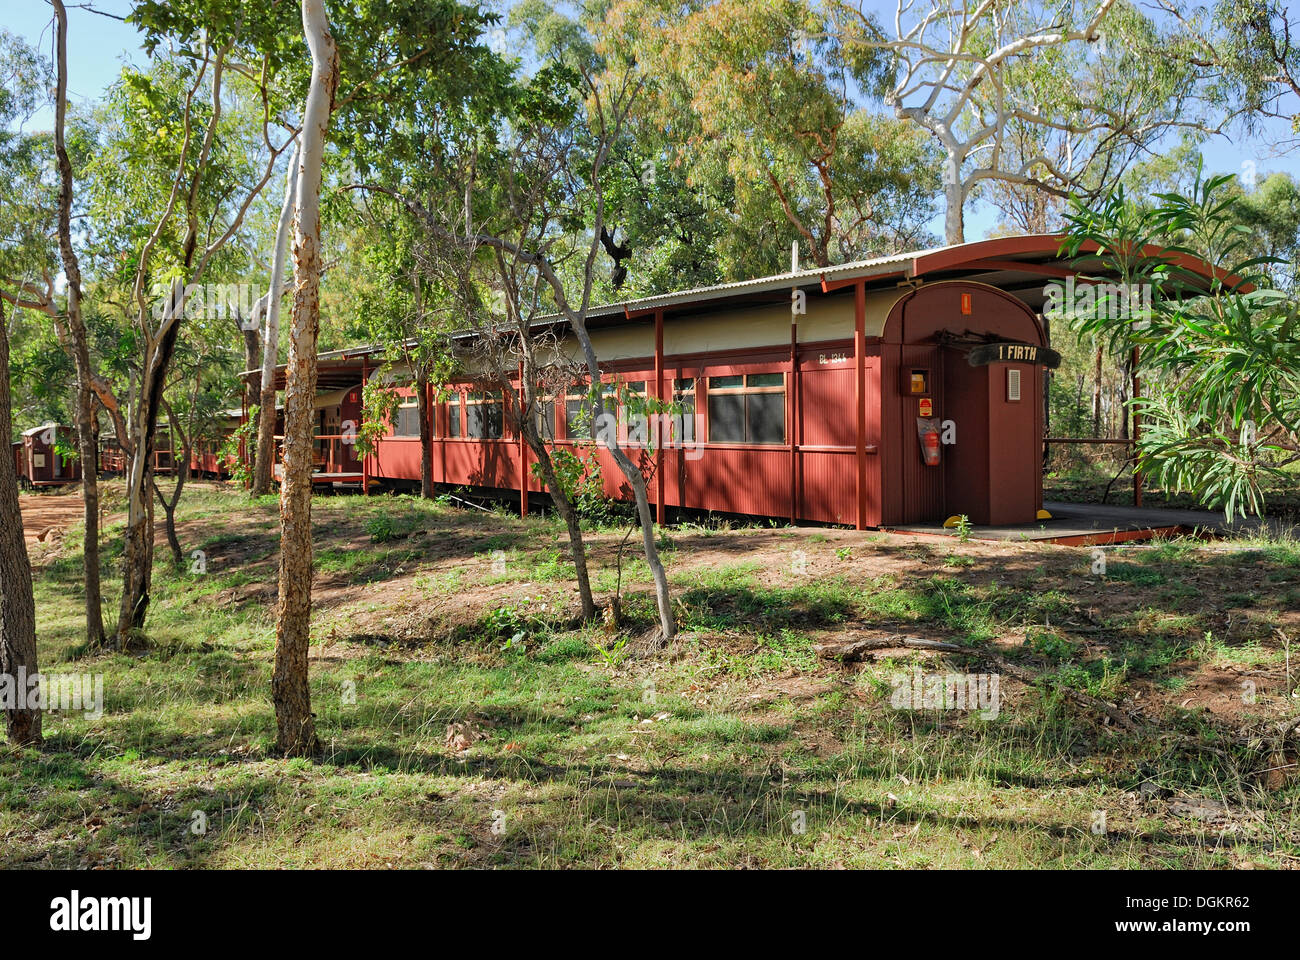 Outback hotel in disused railway wagons, Railway Carriages Accommodation, Undara Volcanic National Park, Undara, Queensland - Stock Image